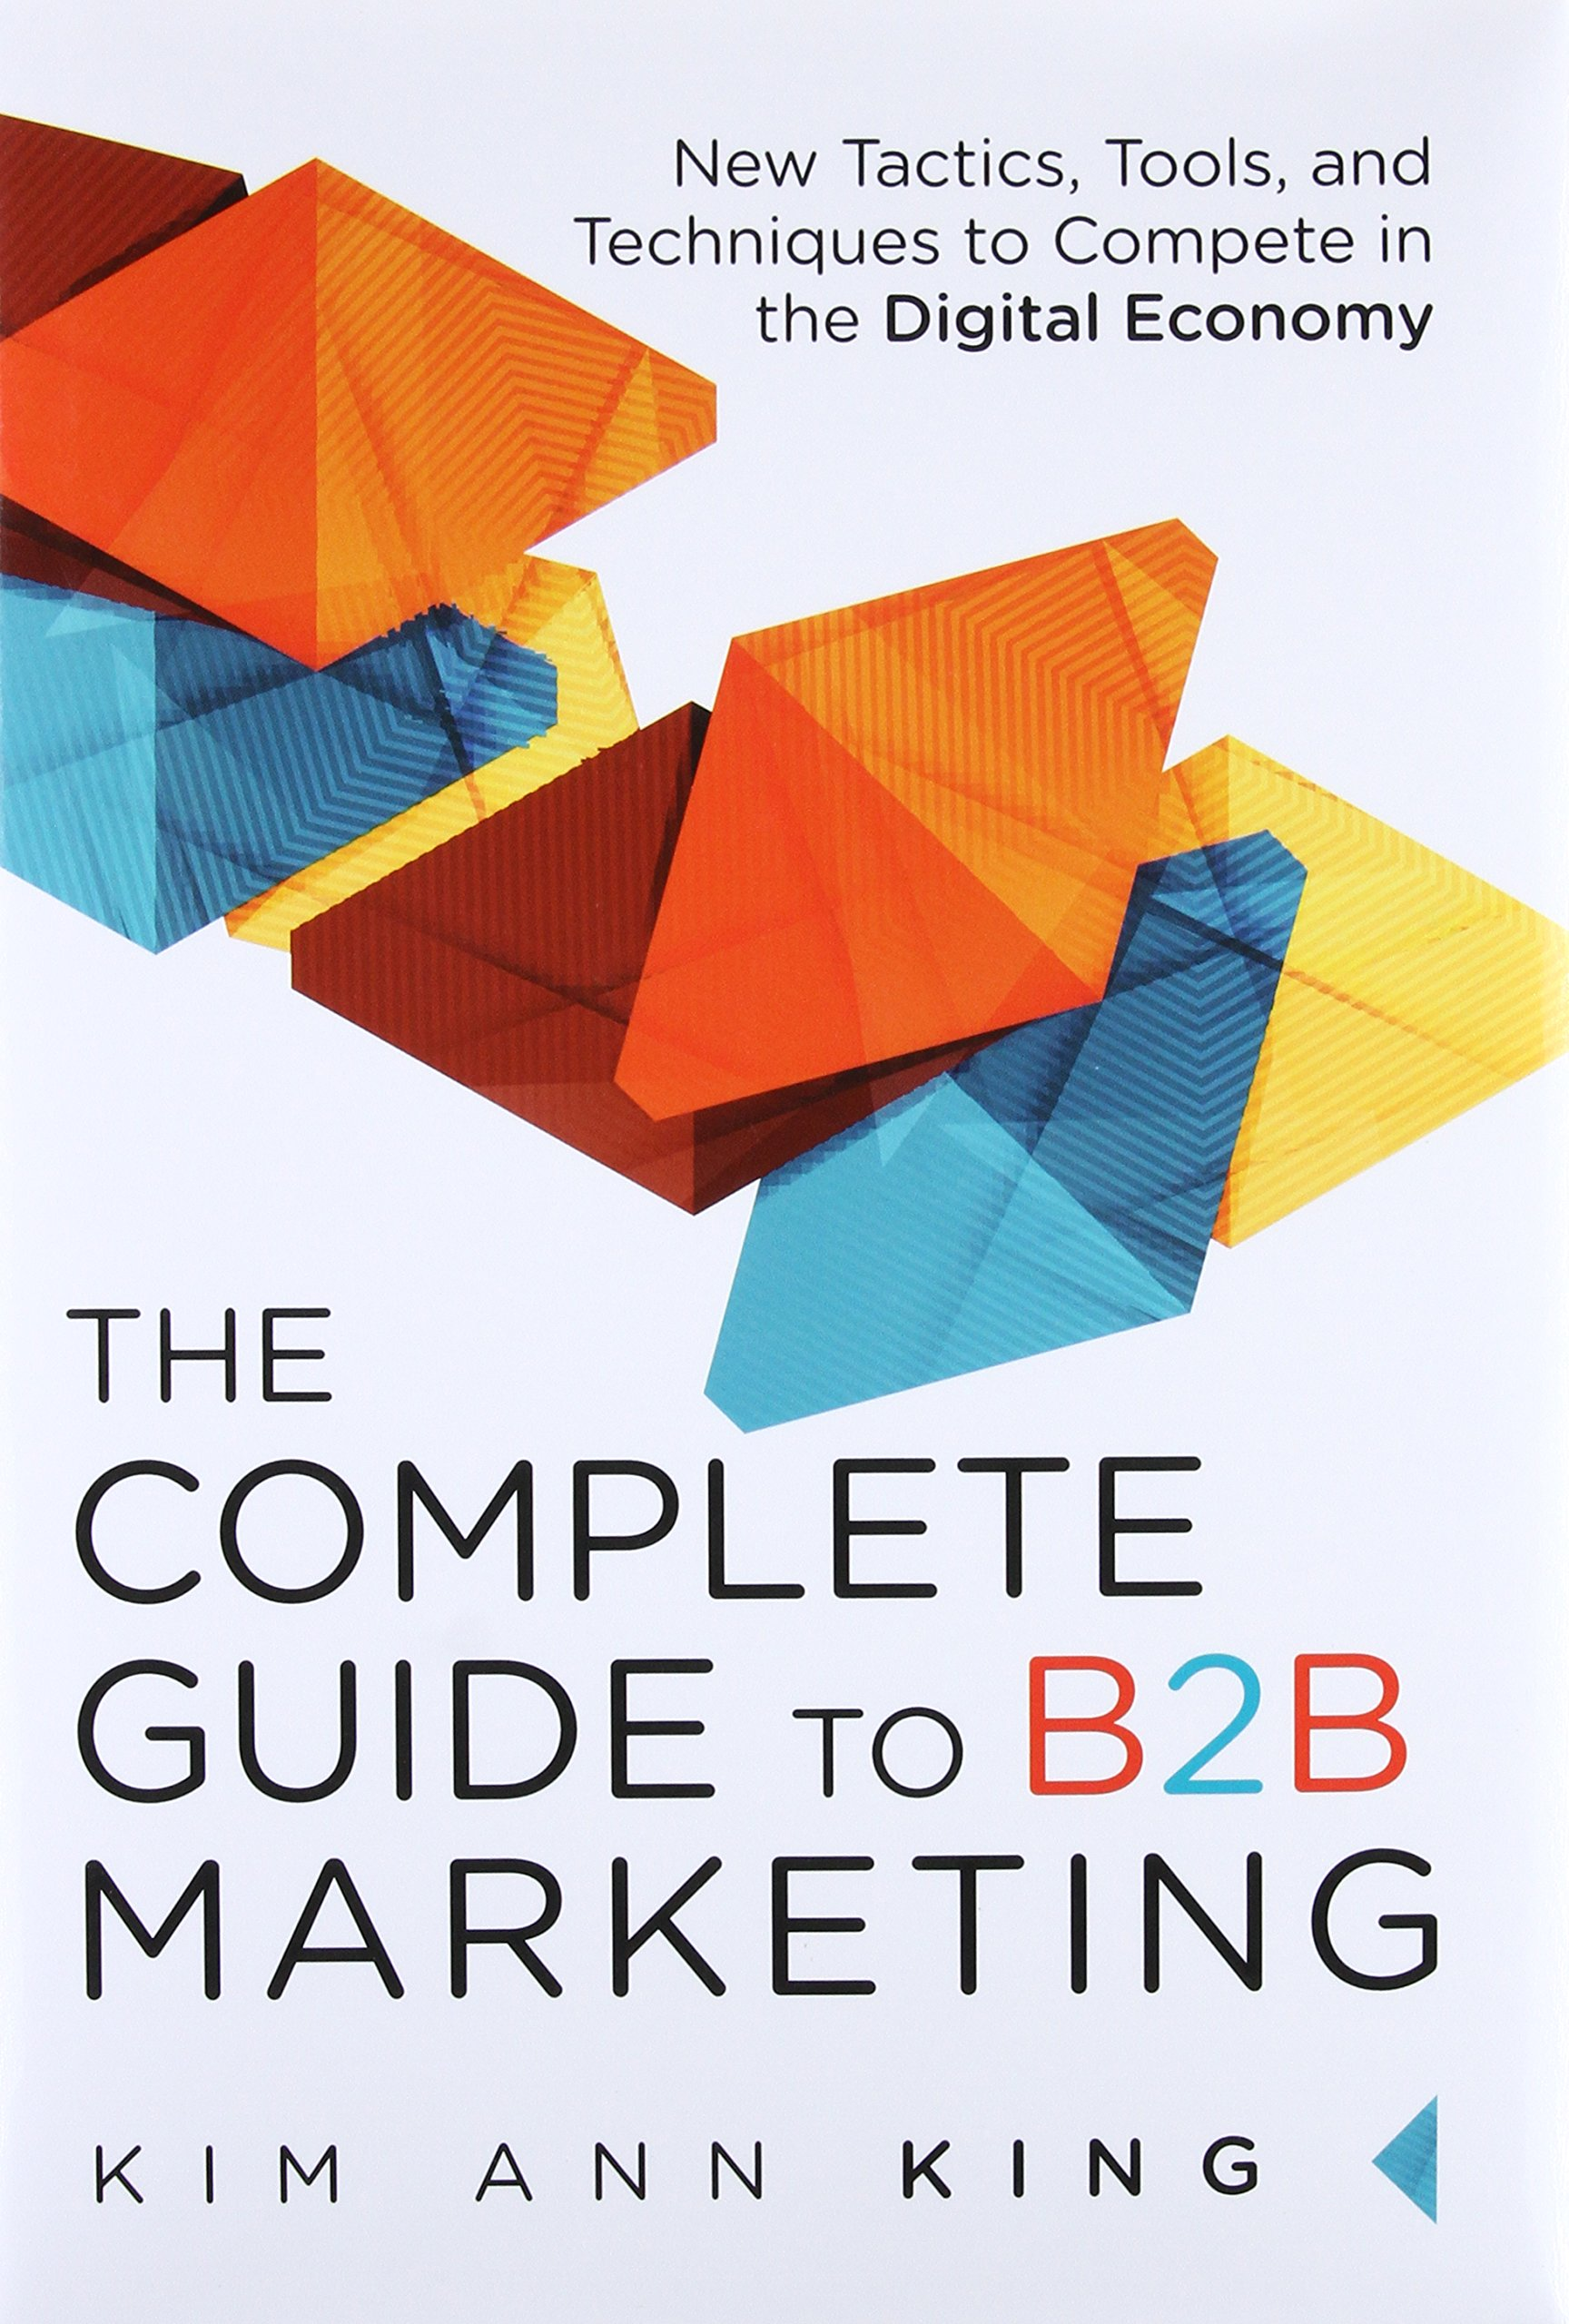 The Complete Guide To B2b Marketing New Tactics Tools And Ultimate Optimizing Your Webs Techniques Compete In Digital Economy Kim Ann King 2015134084527 Books